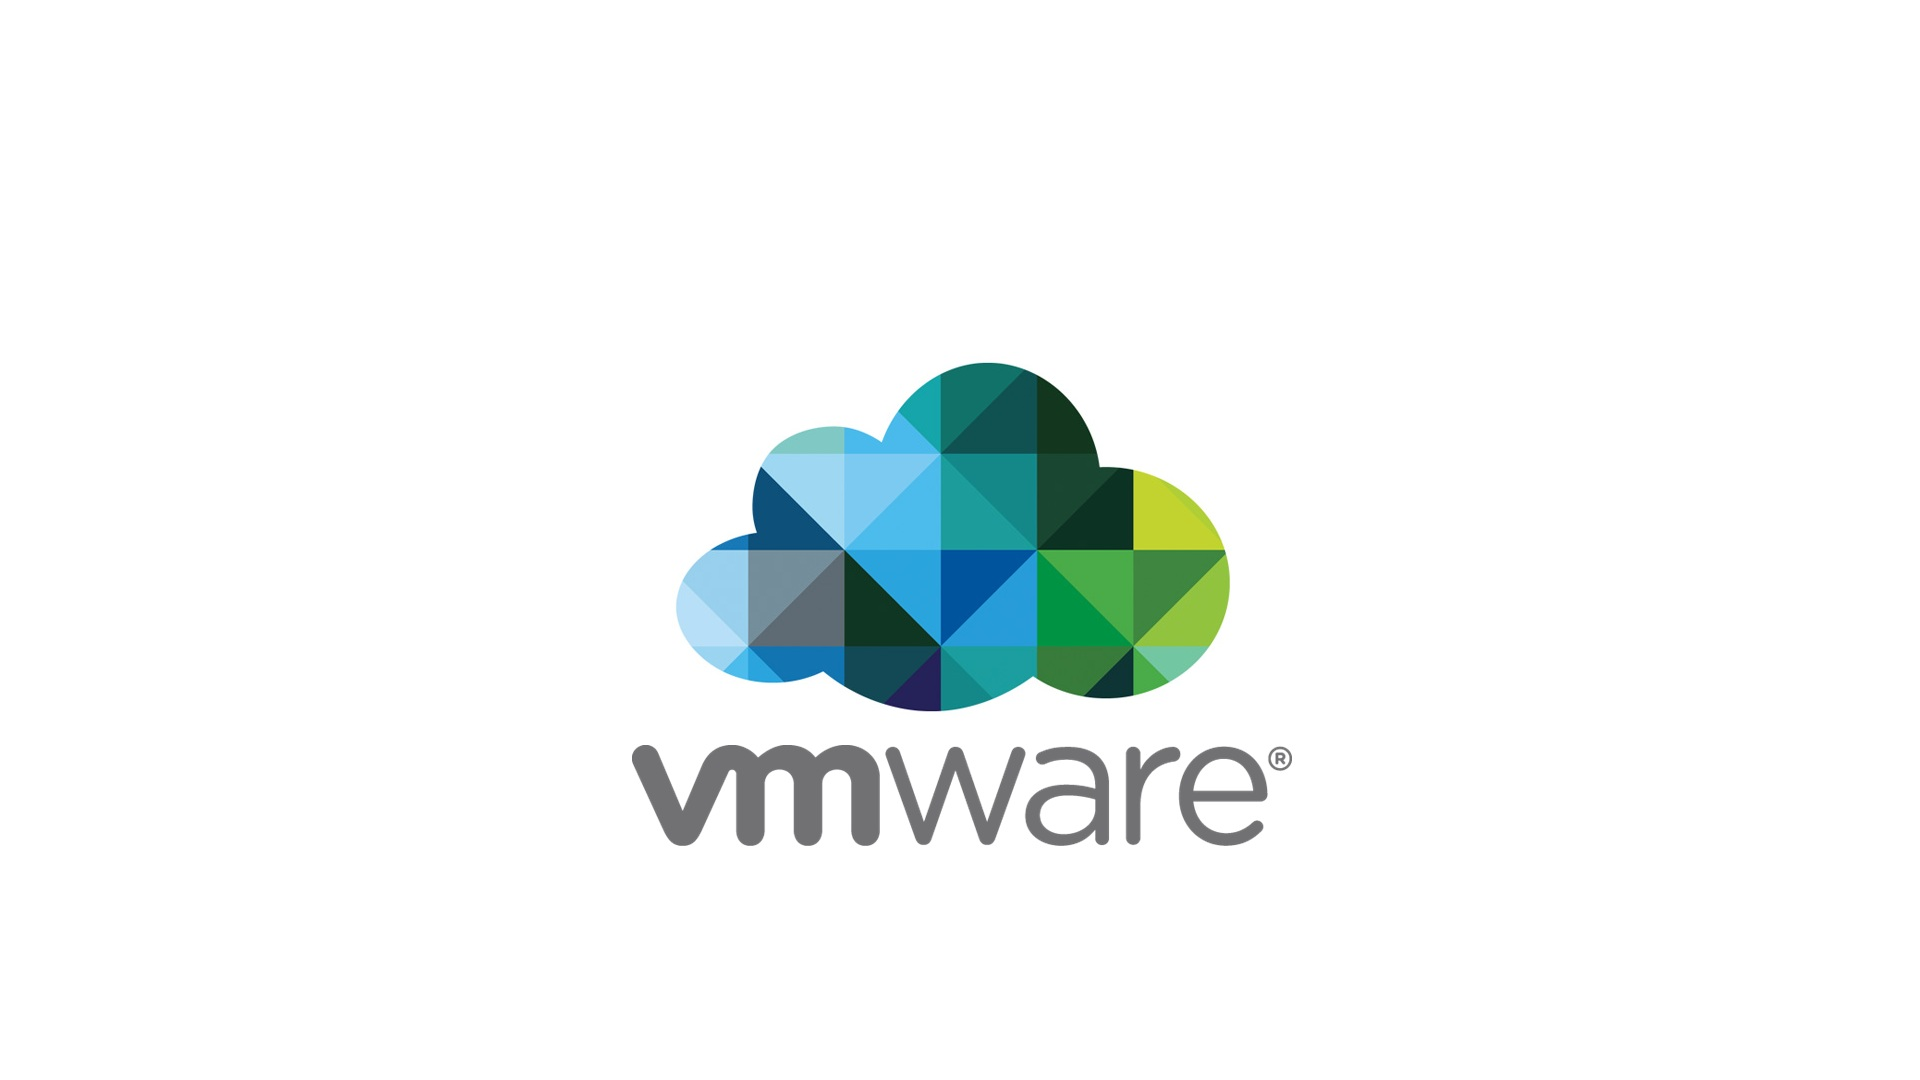 desktop-vmware-background